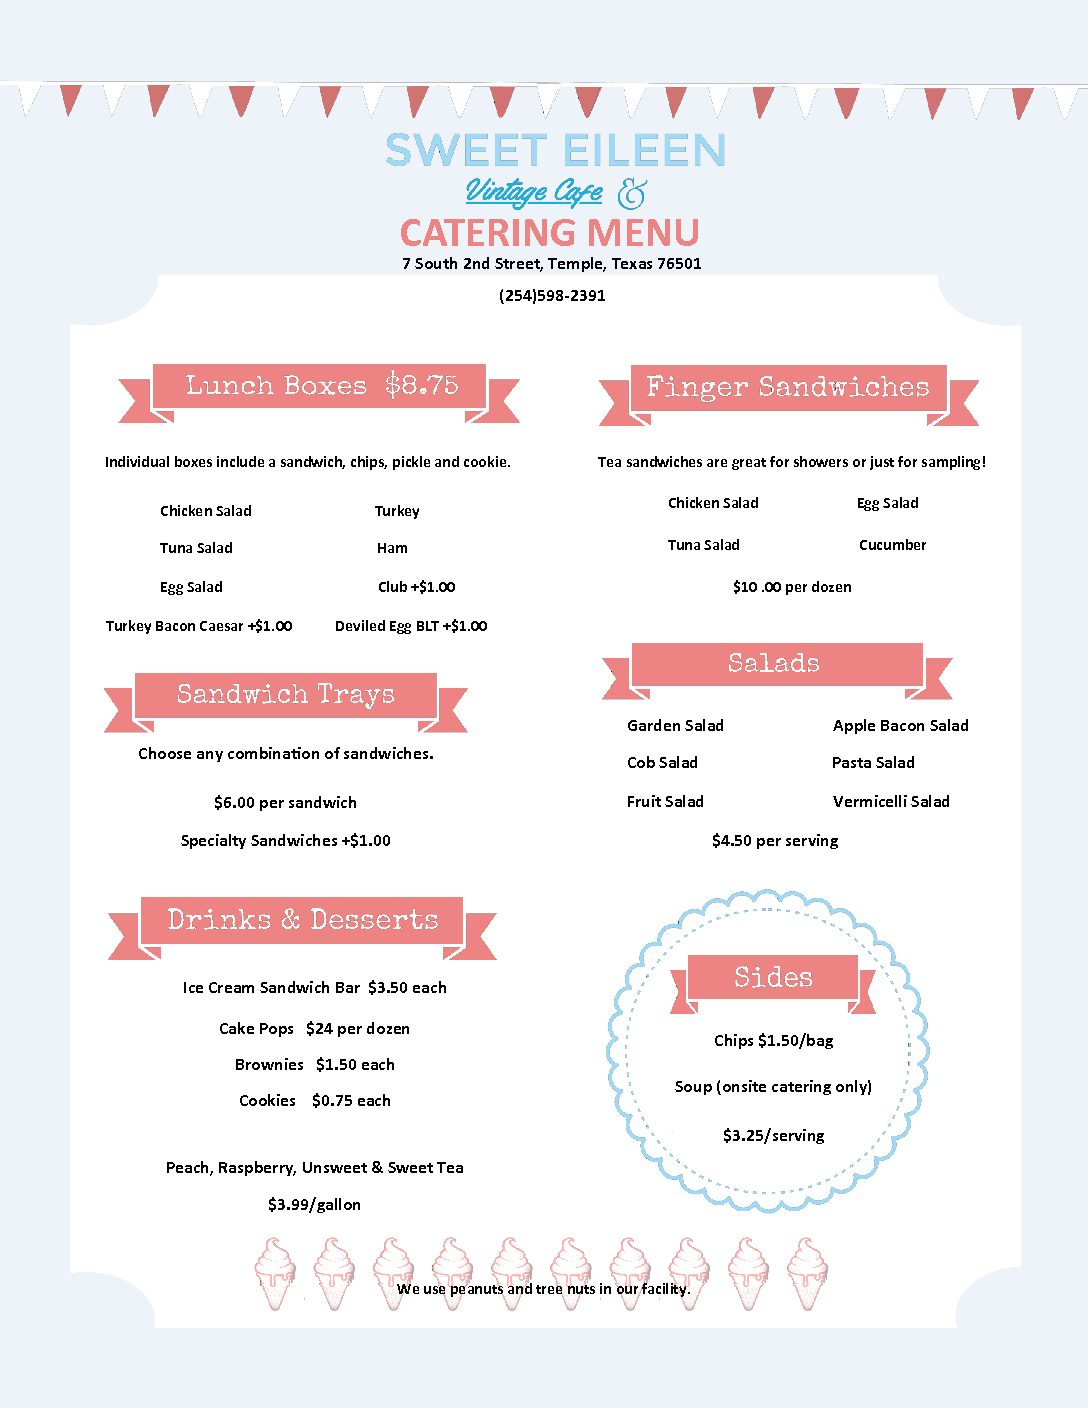 sweet-eileen-catering-menu-7-16-17